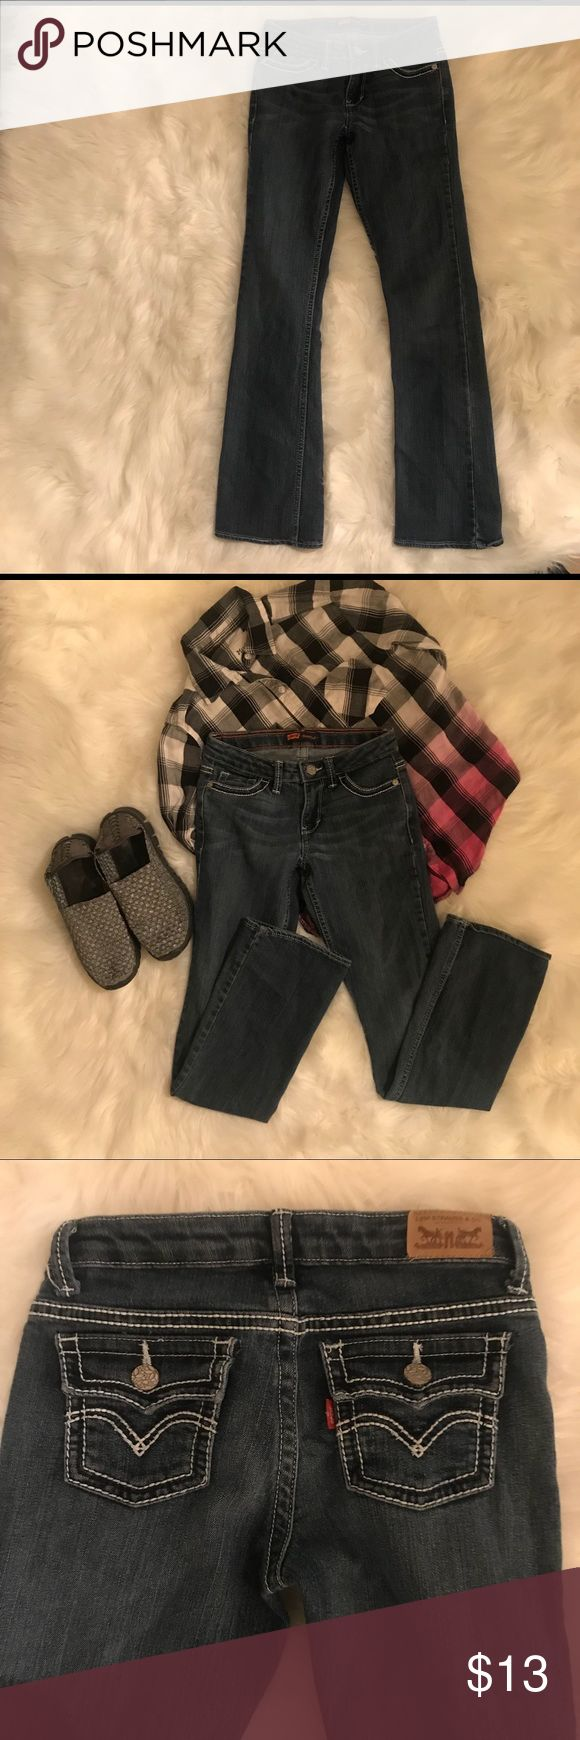 Levi's Boot Cut Girls Bootcut Jeans 👖 These jeans have no real signs of wear and tear and are super cute on! These even have the much loved adjustable waist (shown in pic). Slender in the hips and thighs but made to wear with your boots or tennis shoes! Your special girl will love these! Levi's Bottoms Jeans